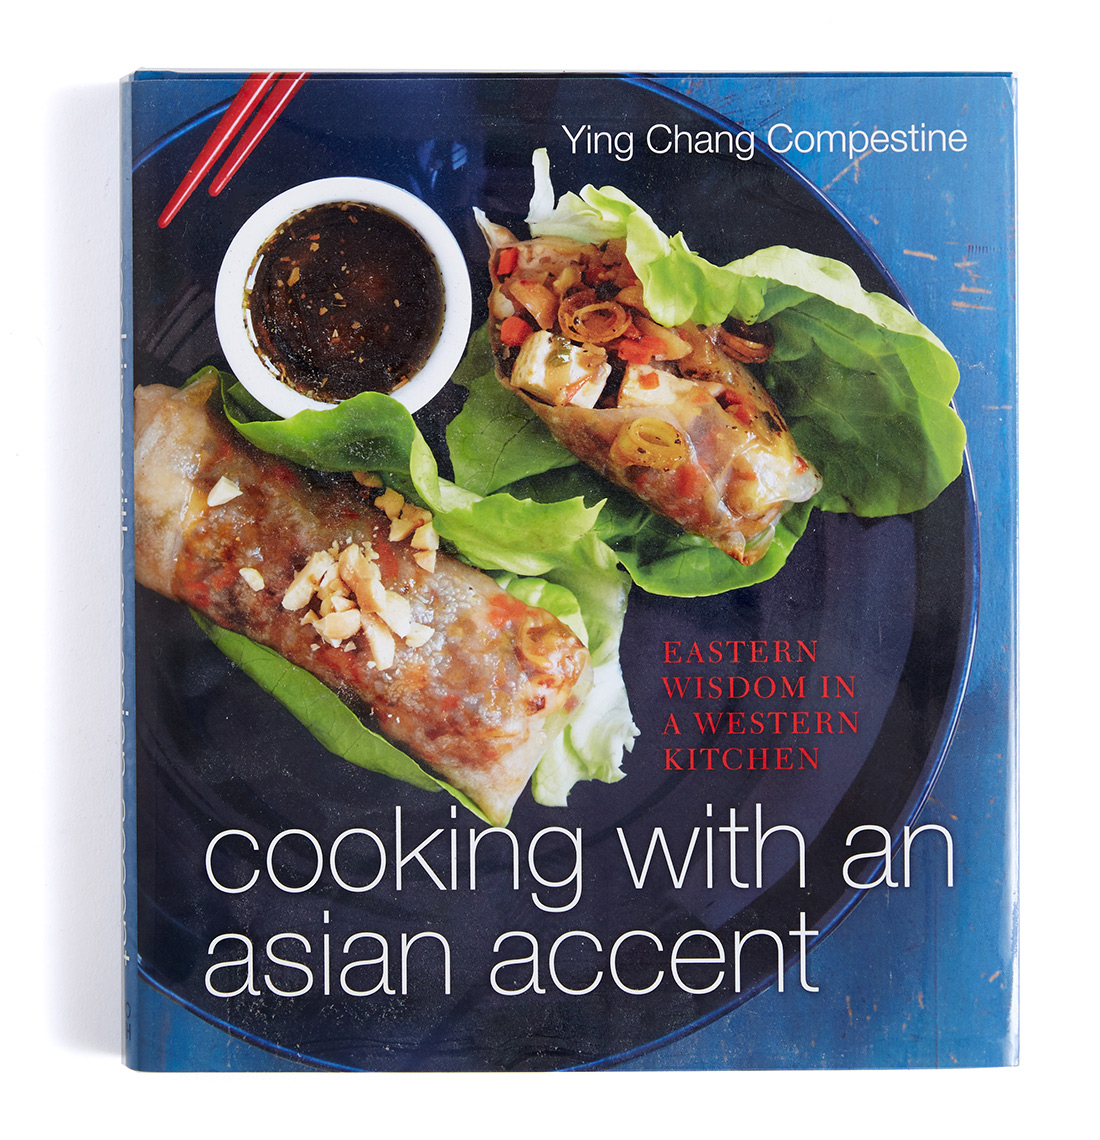 CookingWithAsianAccent_004rt